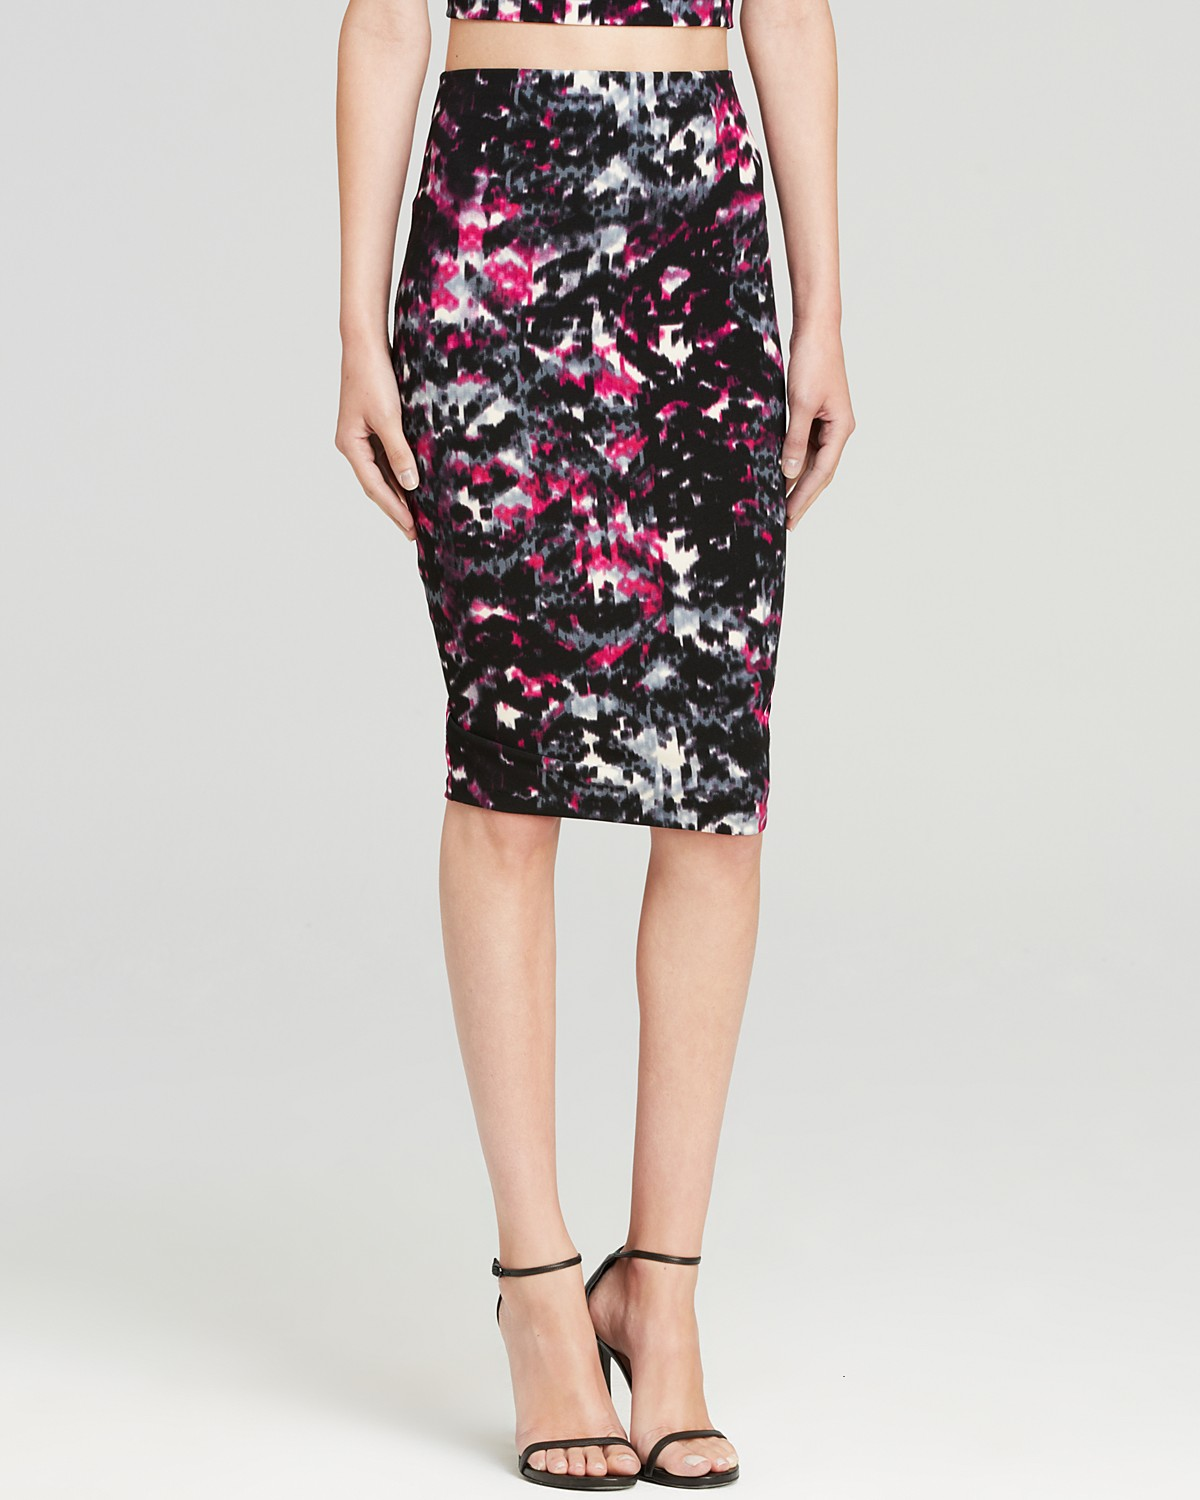 AQUA Skirt - Textured Knee-Length Pencil | Bloomingdale's